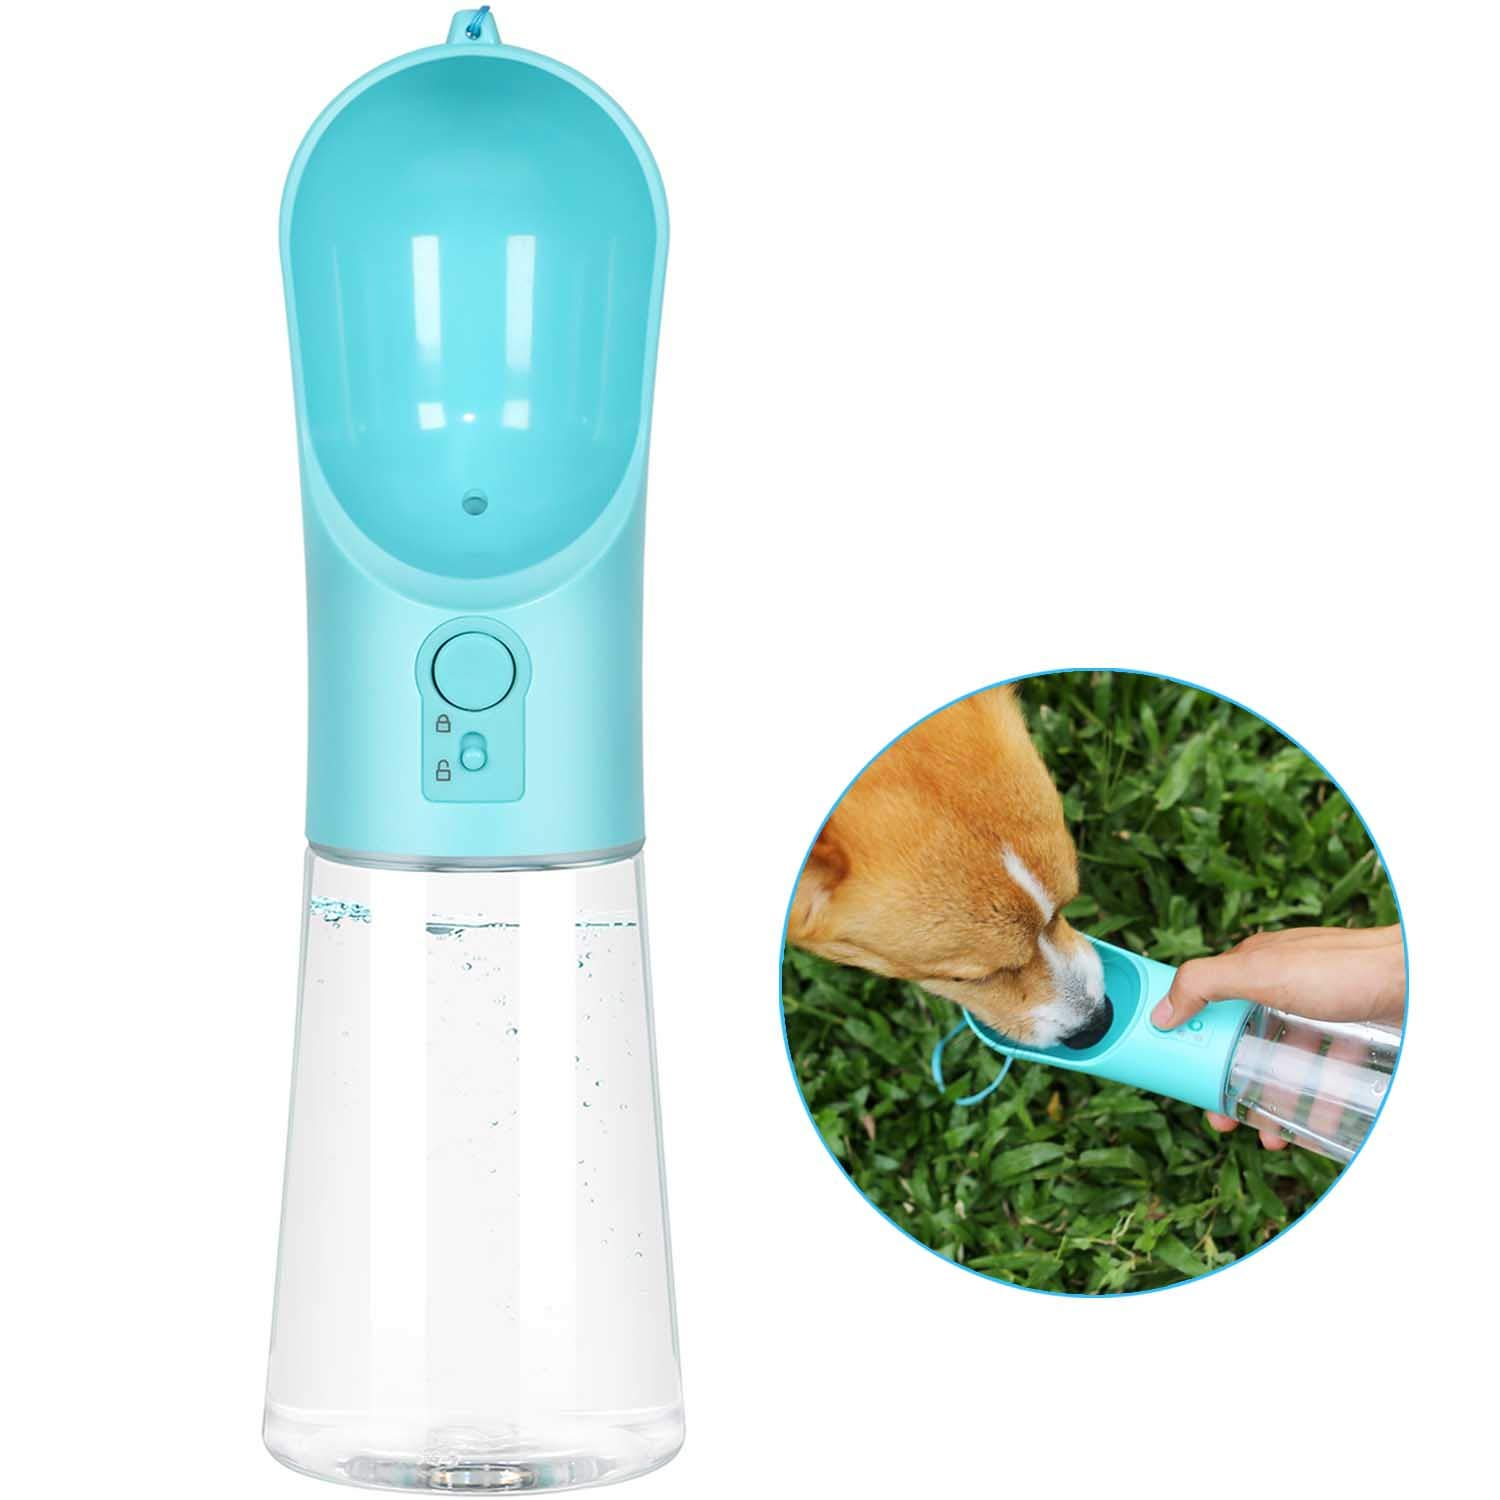 UPSKY Dog Water Bottle Portable Pet Water Bottle with Activated Carbon Filter Leak Proof Dog Water Dispenser, Lightweight Dog Travel Water Bottle Bowl for Walking BPA Free 14 OZ